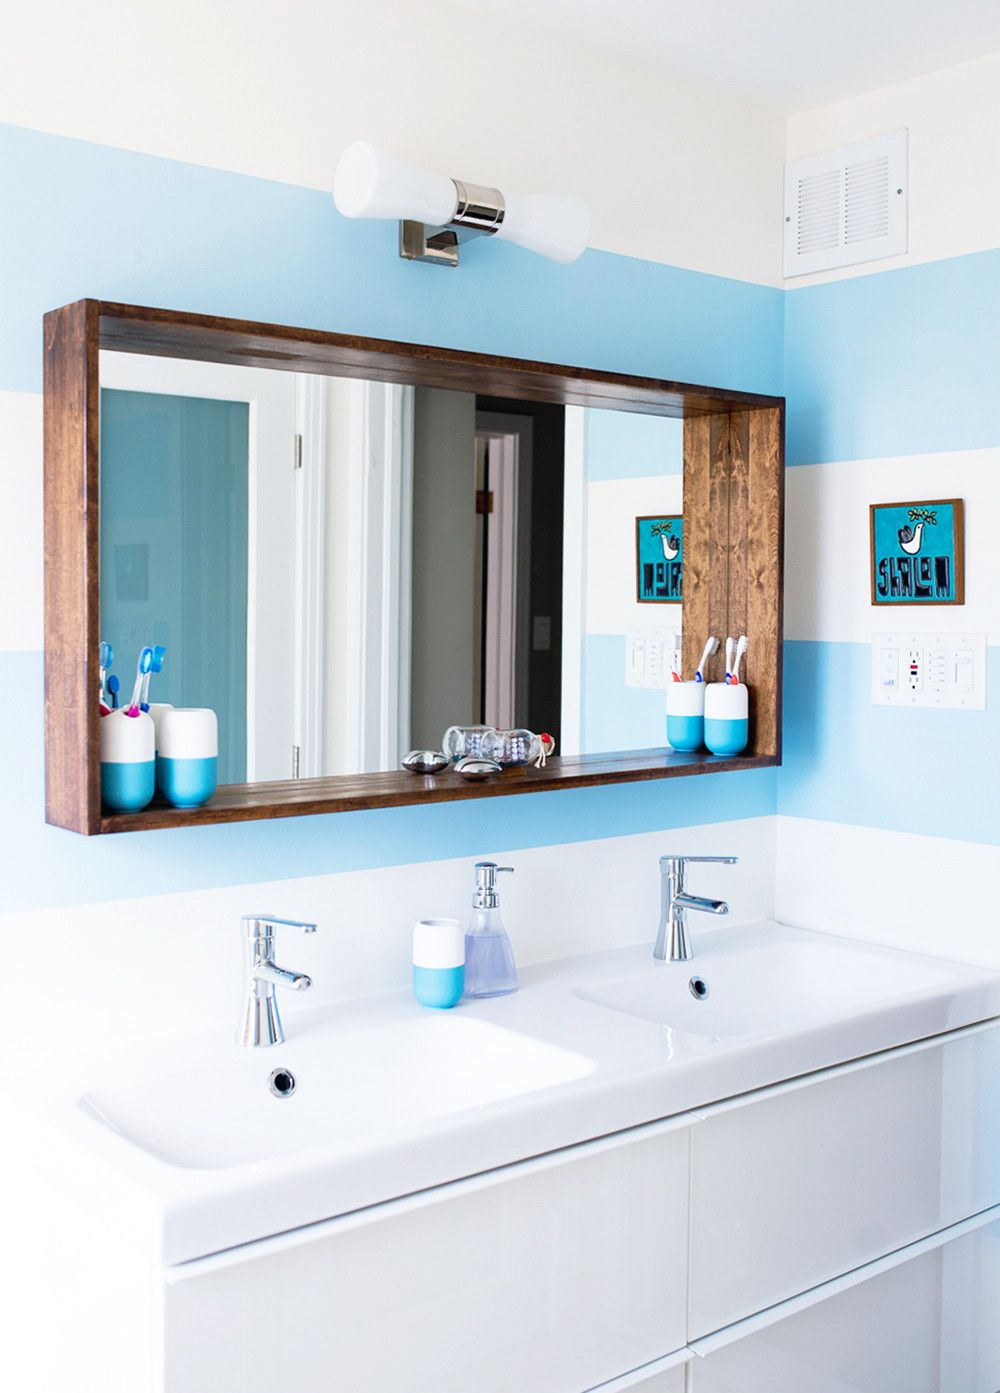 Charmant 17+ Bathroom Mirrors Ideas : Decor U0026 Design Inspirations For Bathroom